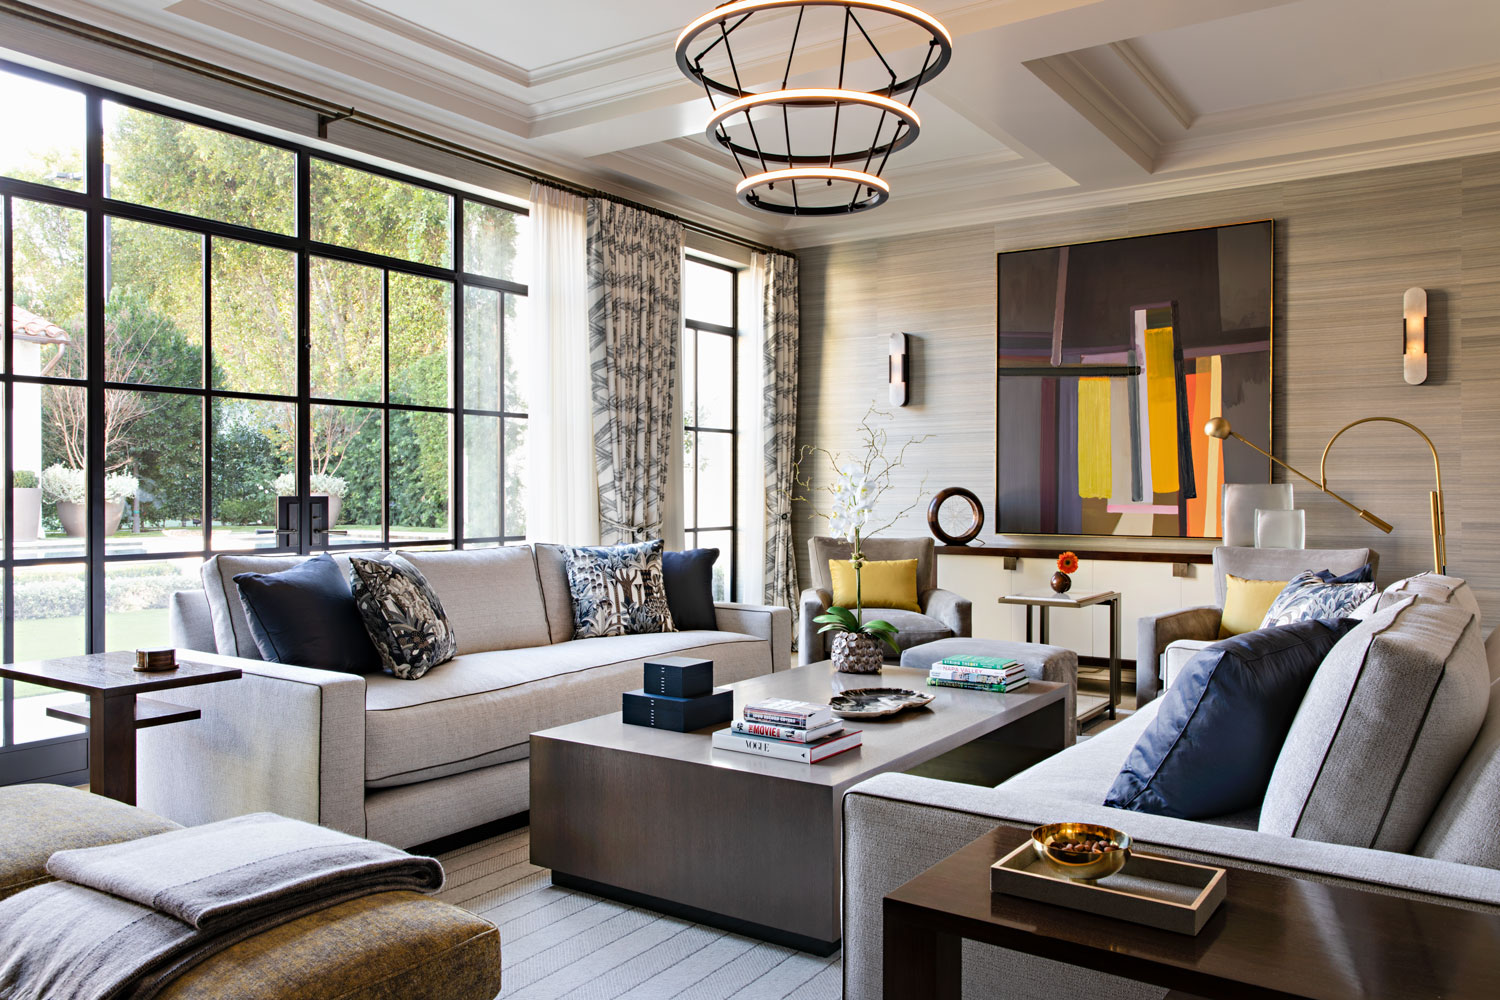 08-transitional-living-room-steel-windows-coffered-ceiling-gary-drake-general-contractor.jpg